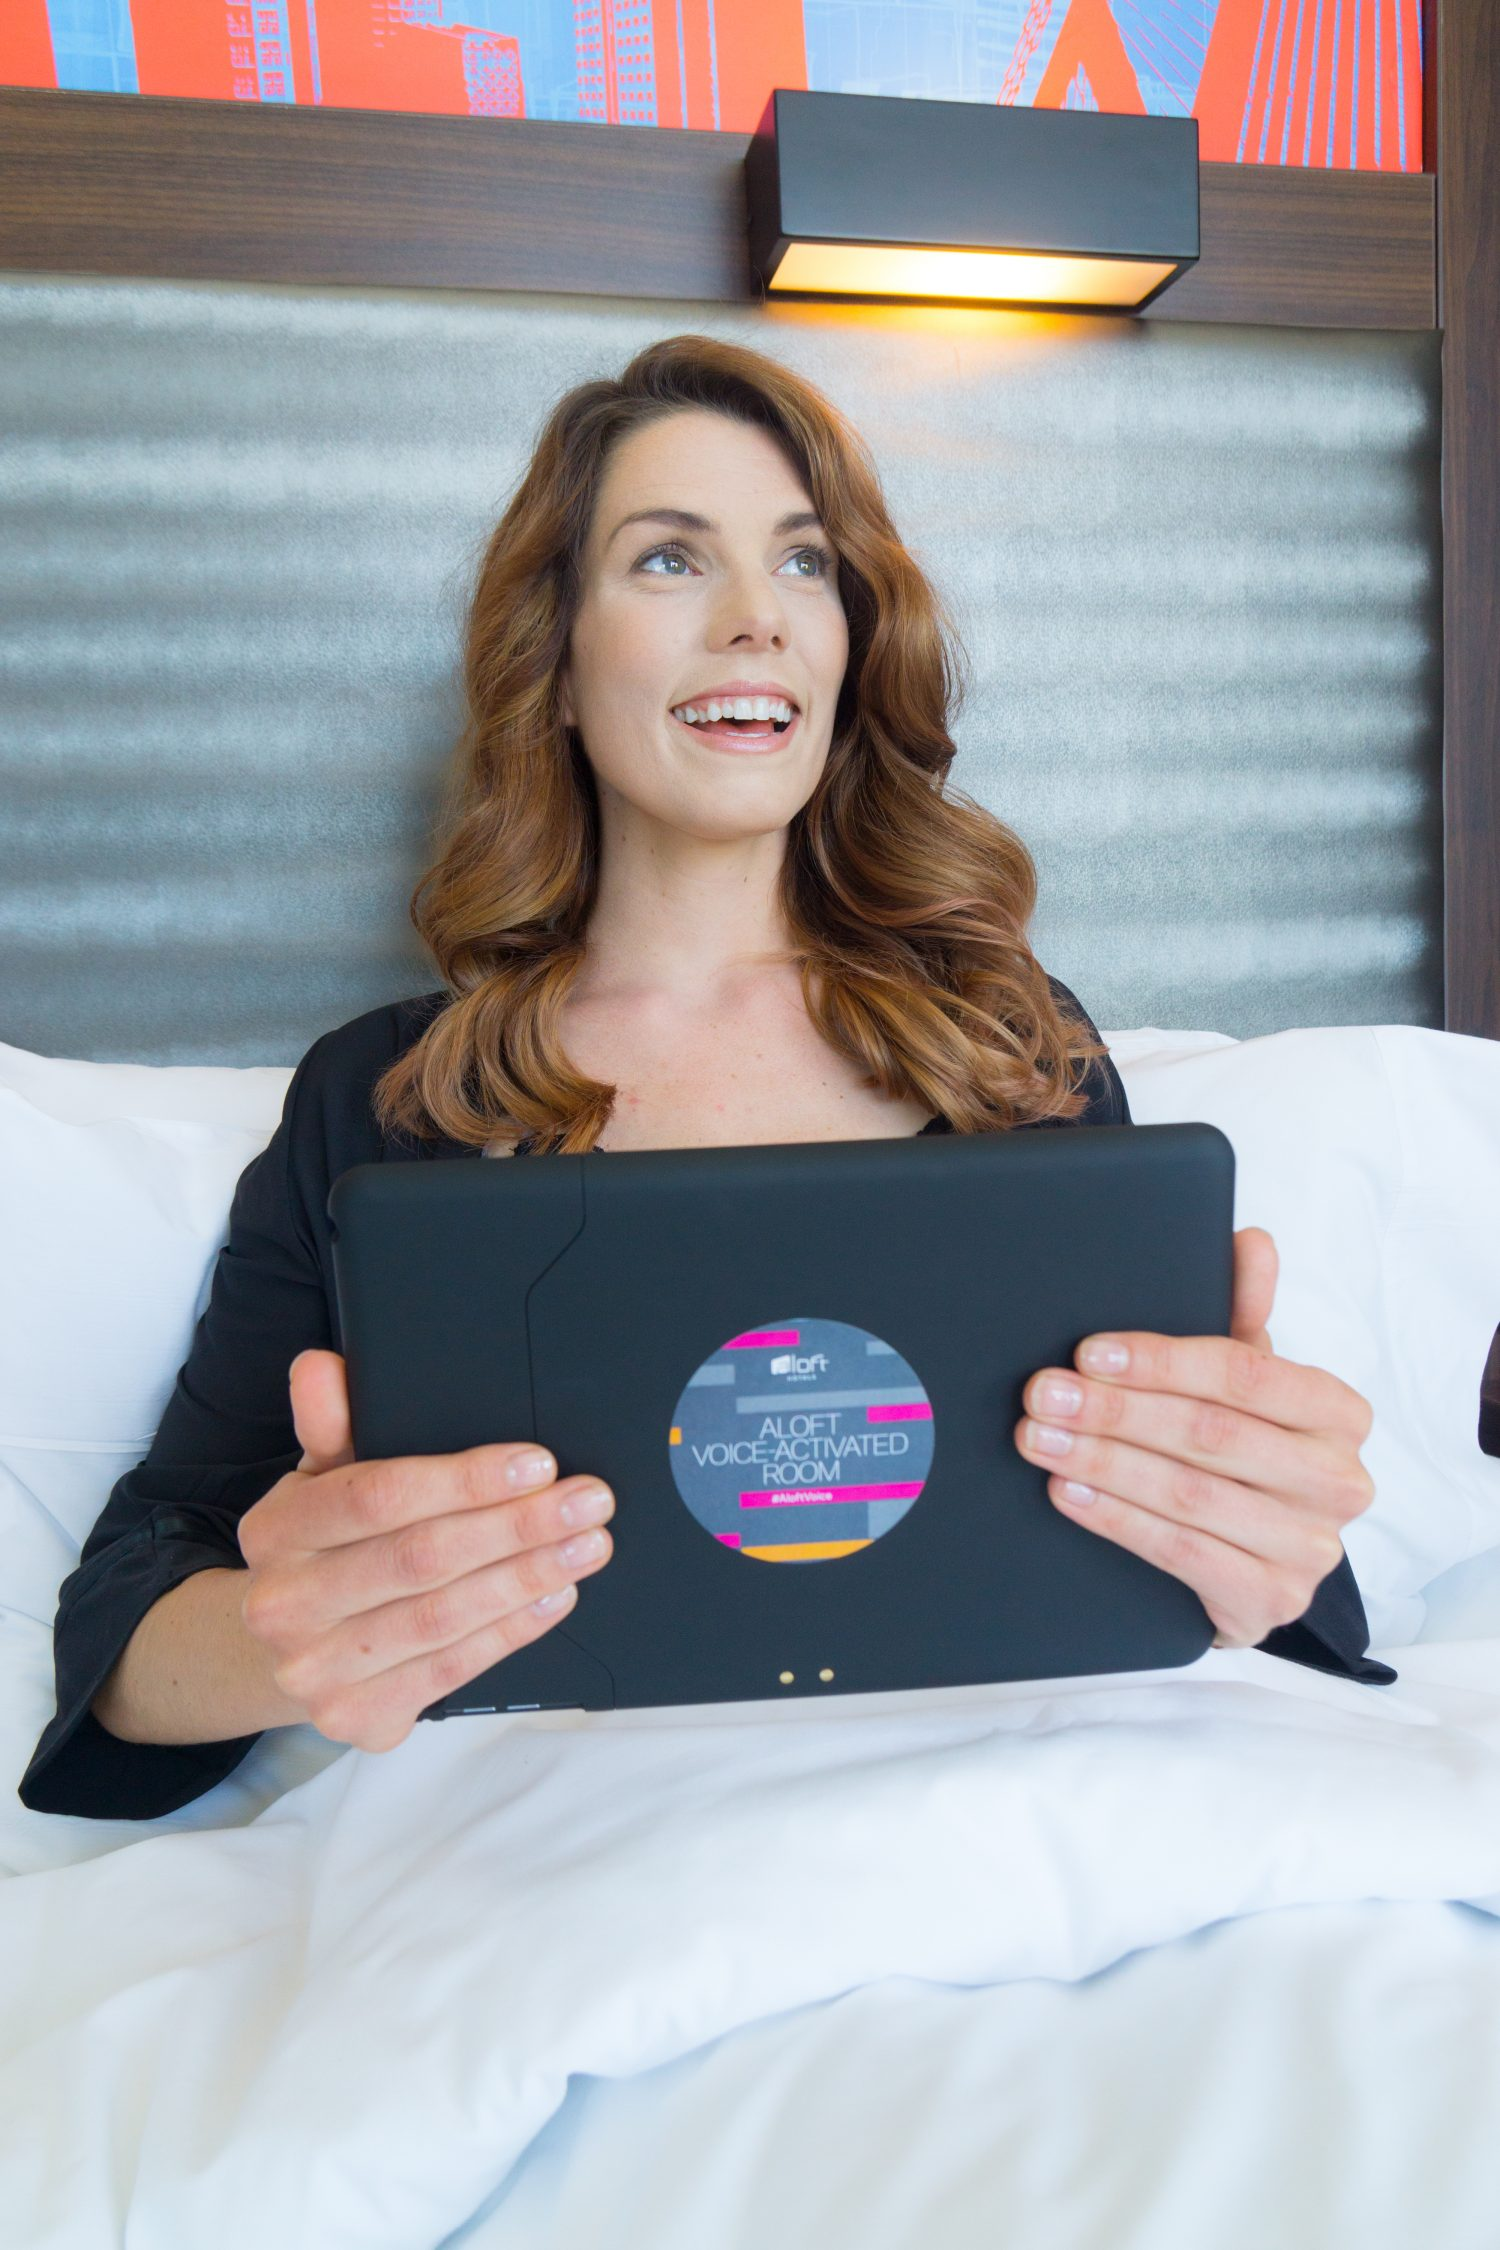 Aloft voice-activated hotel room